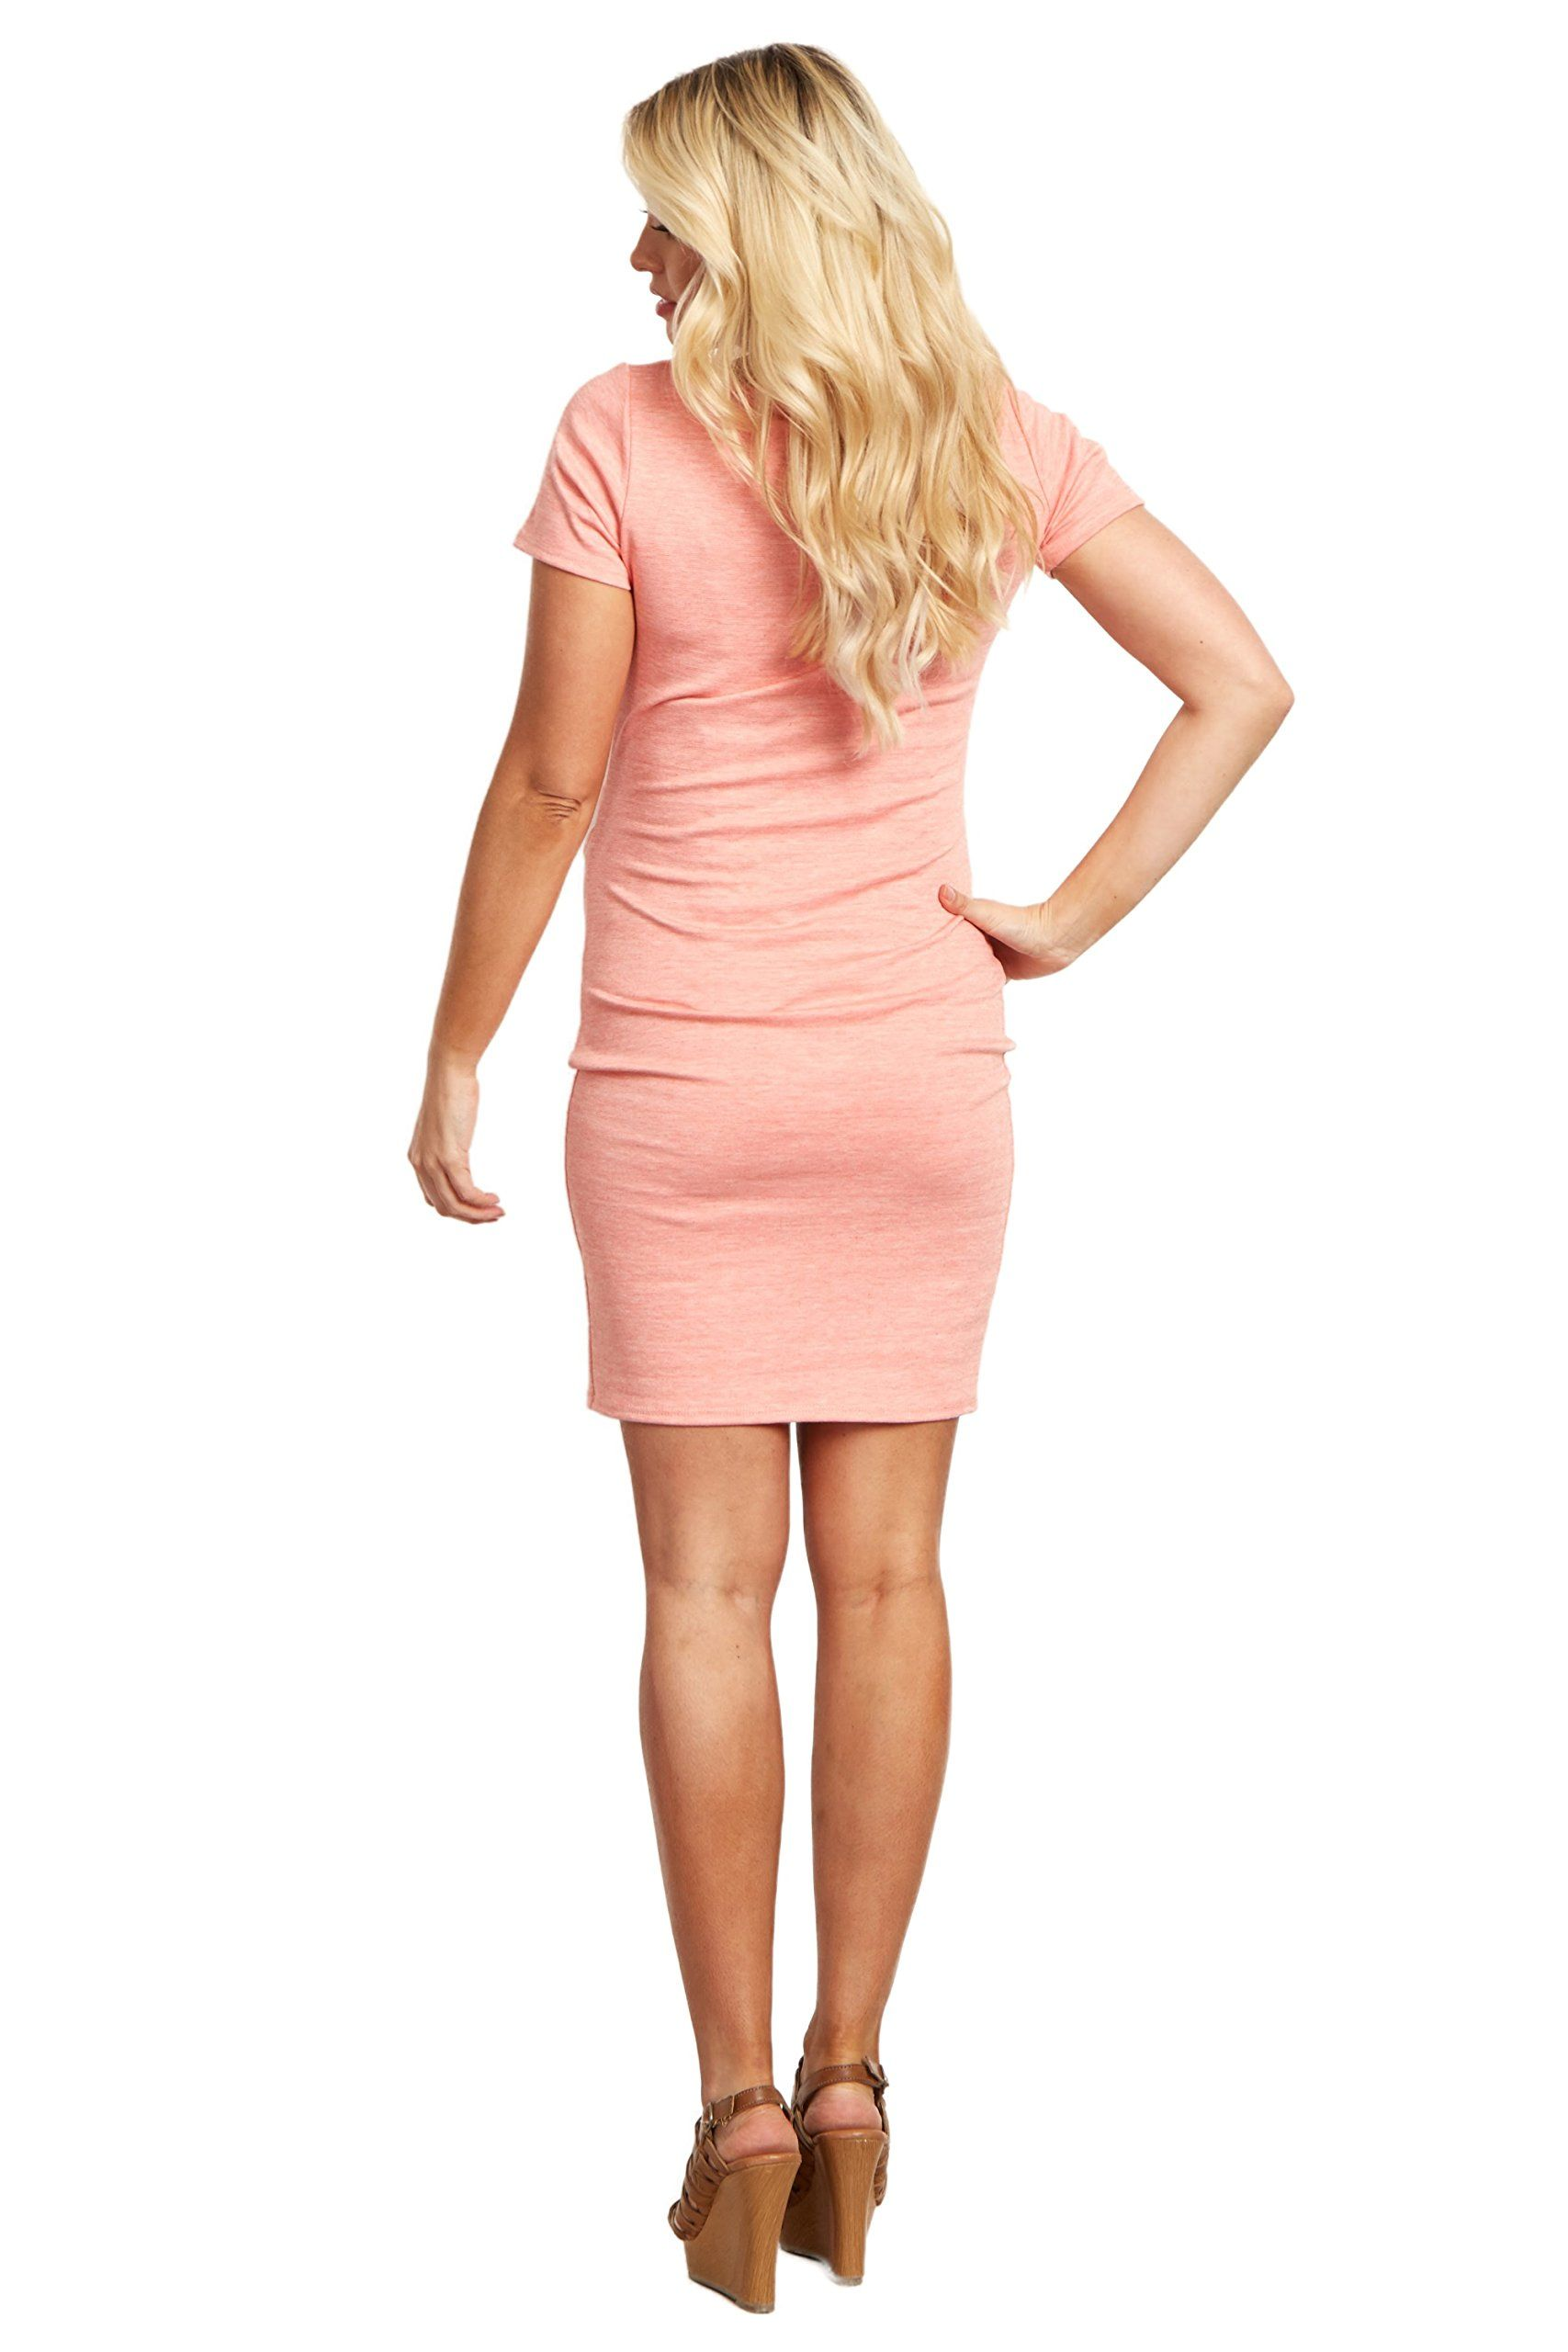 2c7c4d47b76 Maternity Fashion - machine washable maternity dresses   PinkBlush Maternity  Coral Short Sleeve Fitted Tall Maternity Dress Small     Find out even more  ...